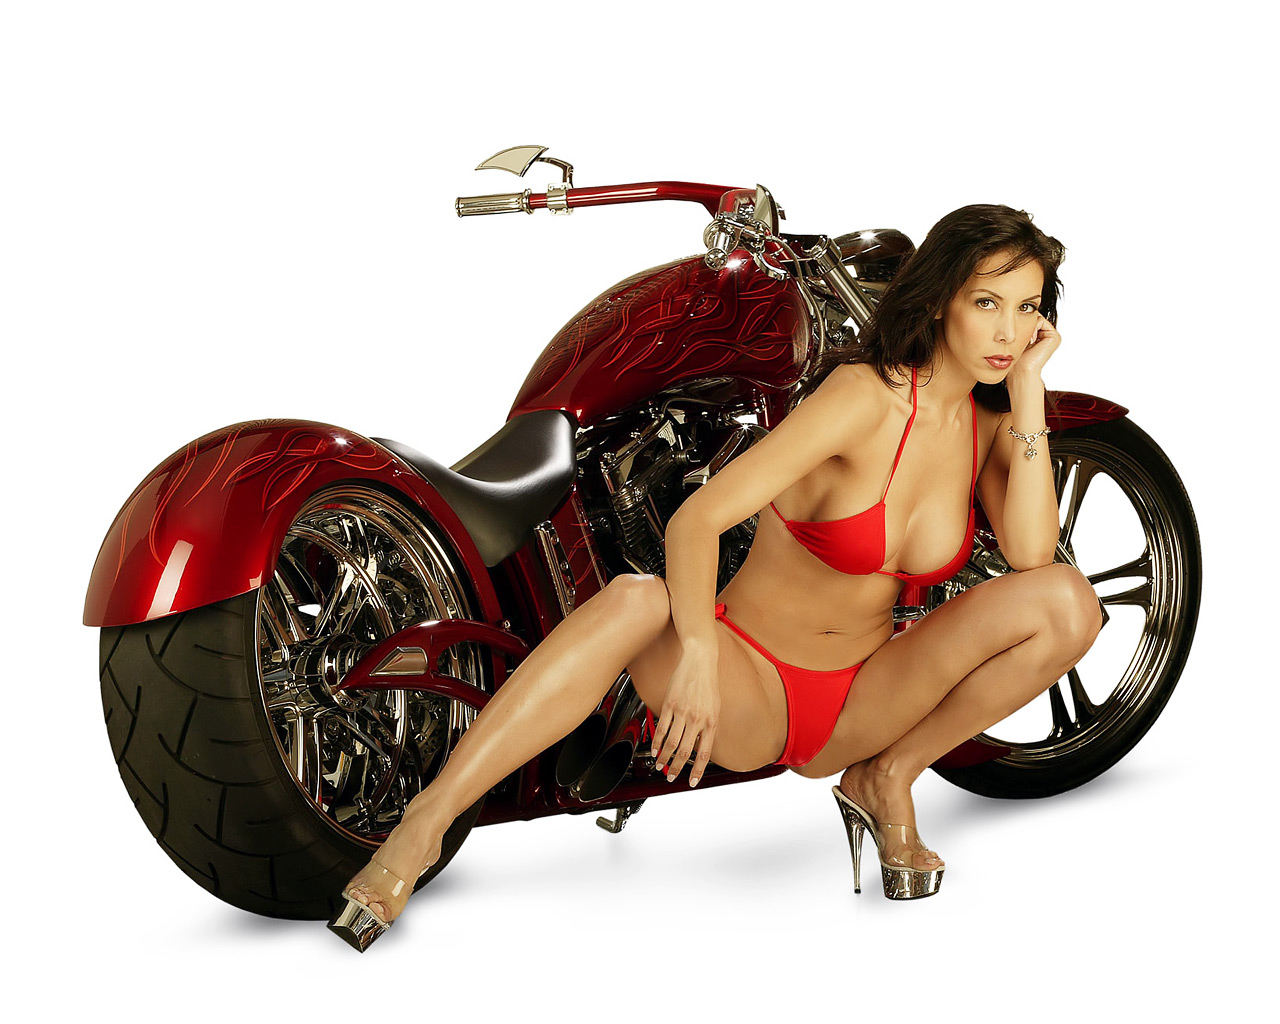 http://4.bp.blogspot.com/-q2NJGCw0Ti8/TXYNiXCqYcI/AAAAAAAAJjE/ZTinYmgulPs/s1600/Red_Flame_Custom_and_Hot_Brunette_wallpaper.jpg